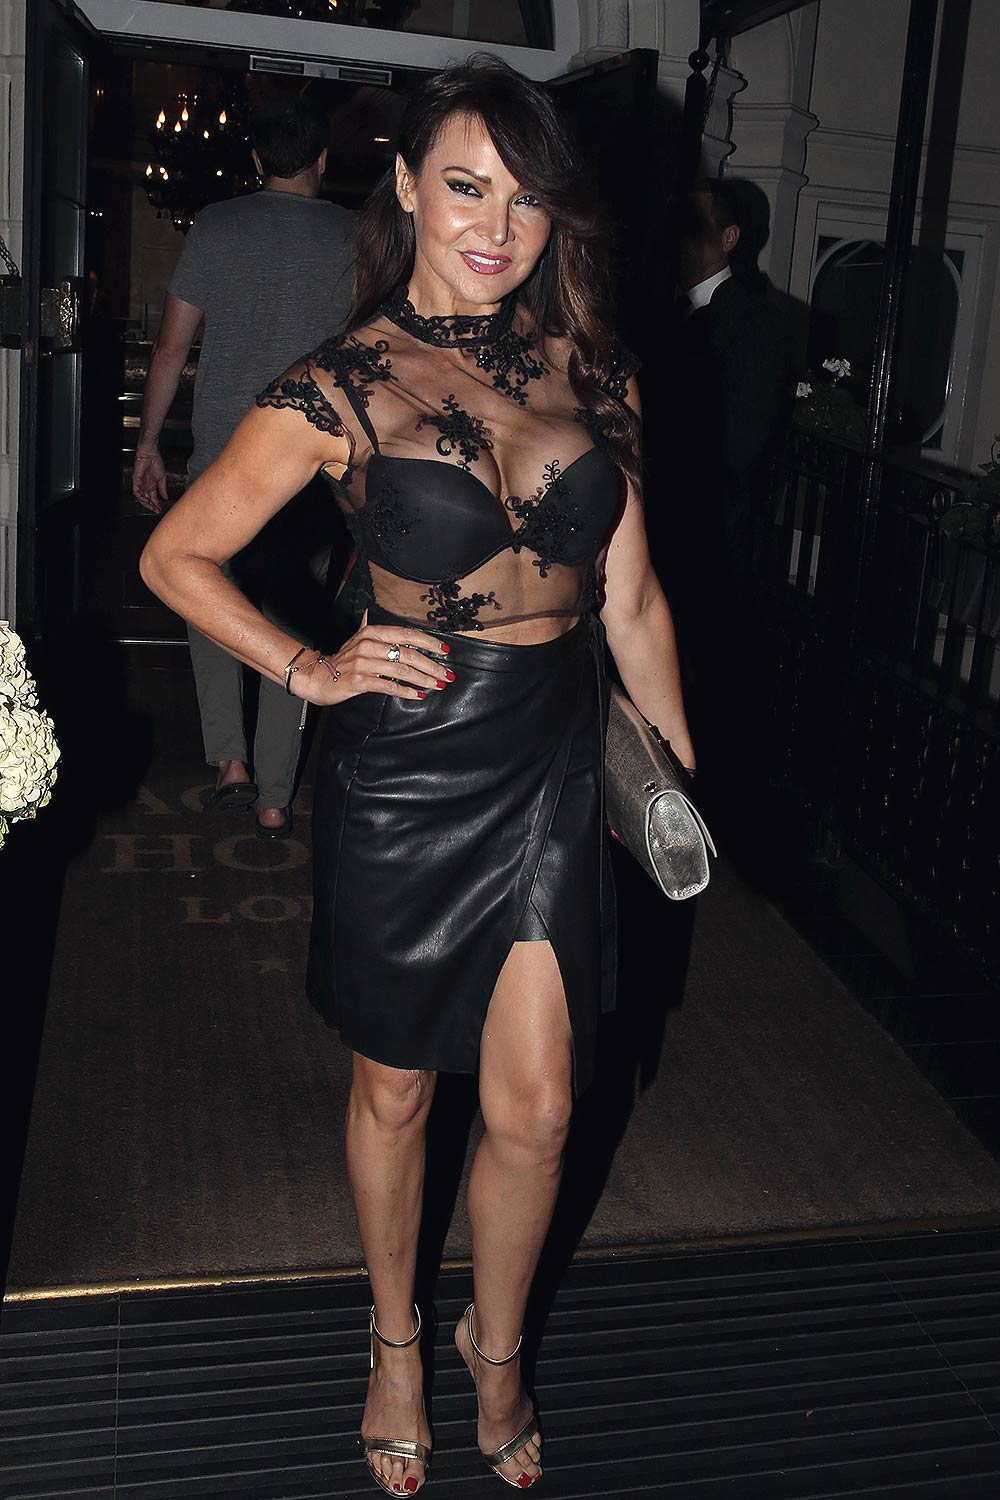 Celebrites Lizzie Cundy nude photos 2019